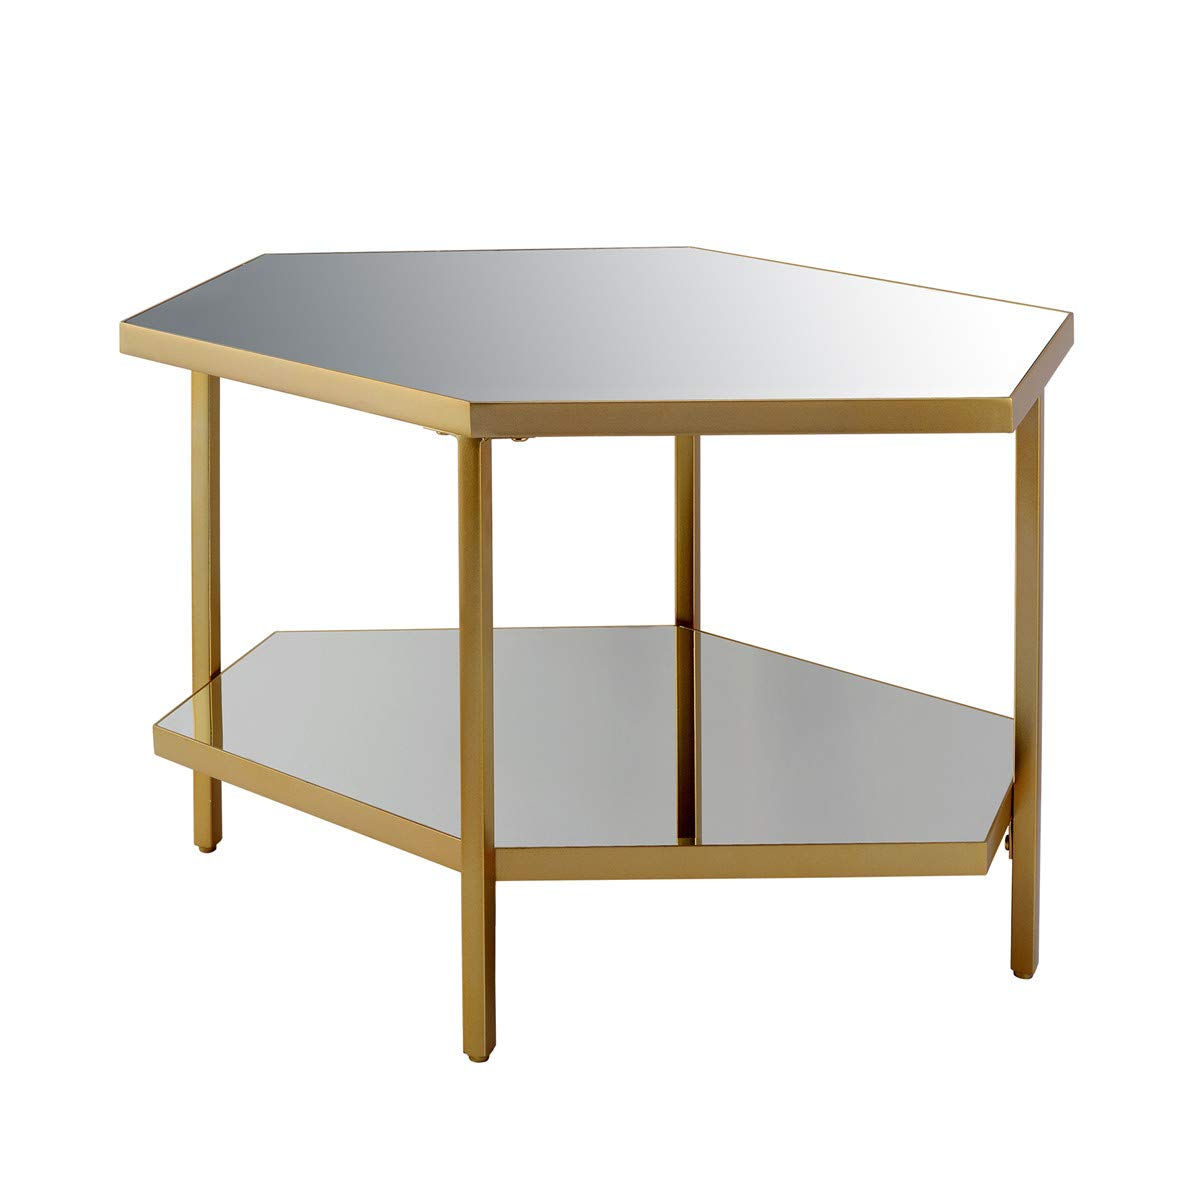 End Table Small Side Table End Table, Mirror Glass, Gold Metal, Save Space Corner Table for Bedroom&Living Room